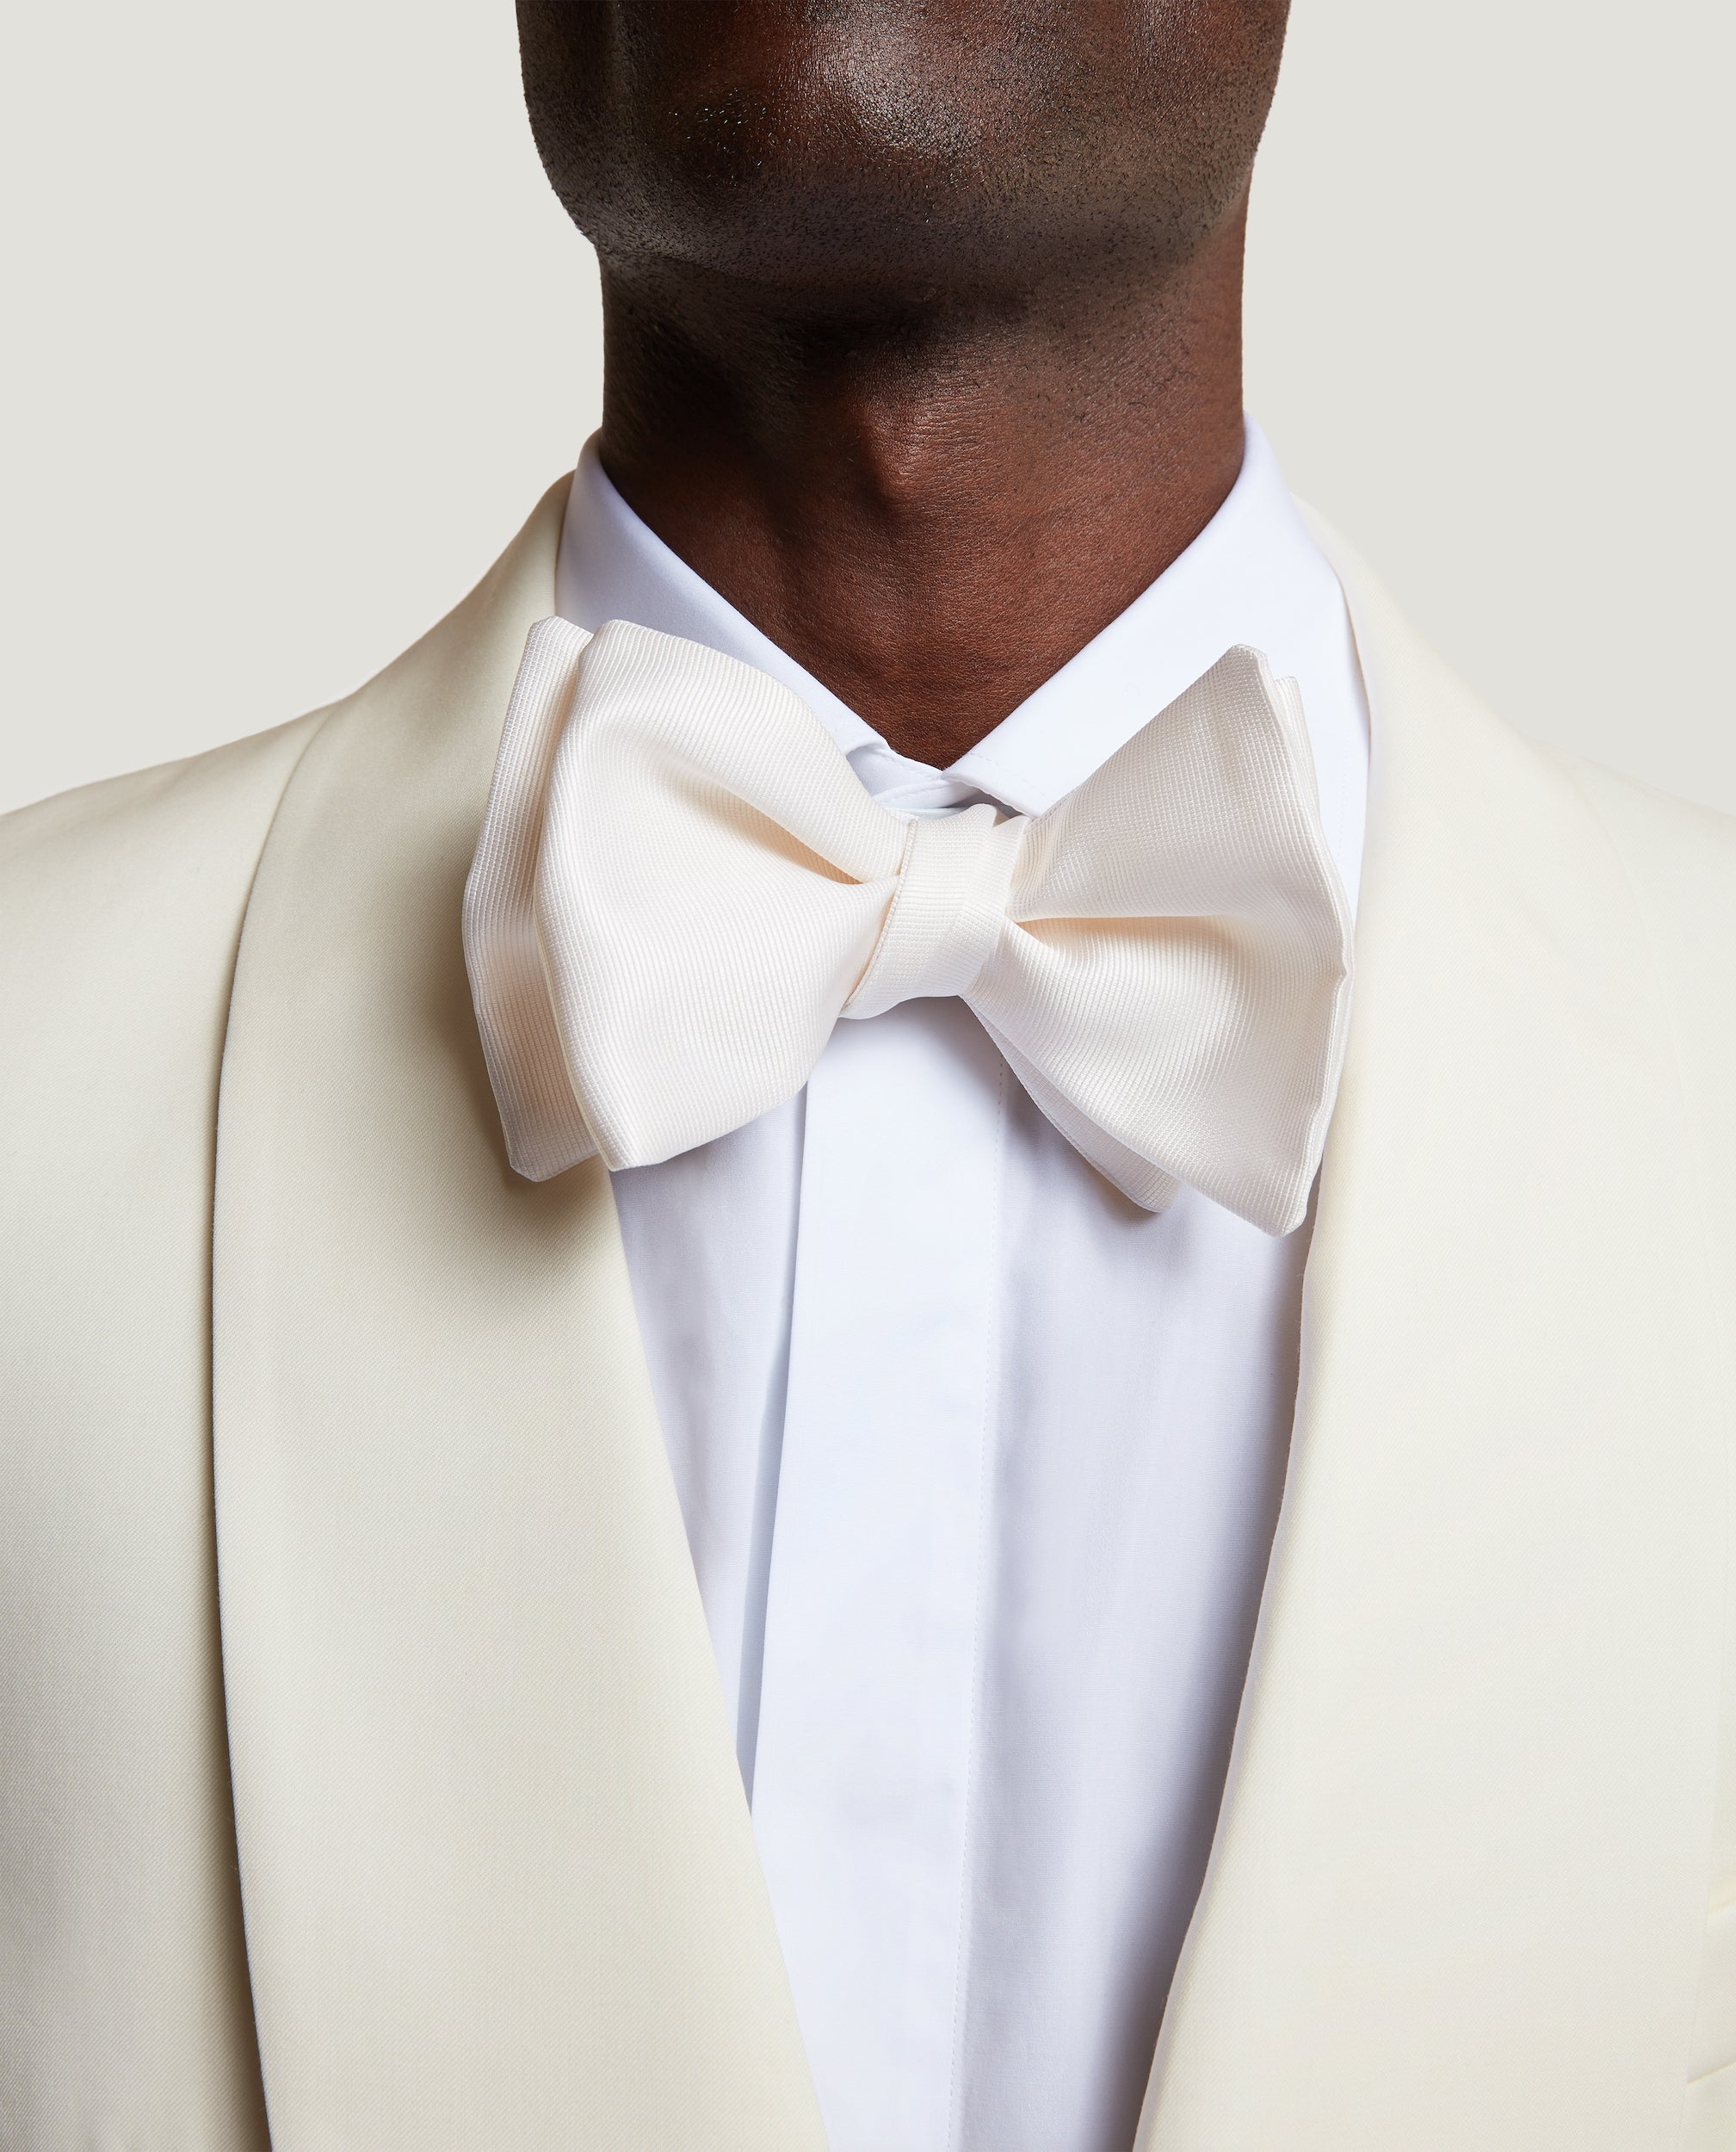 ALEX Silk bow tie | MR PORTER EXCLUSIVE